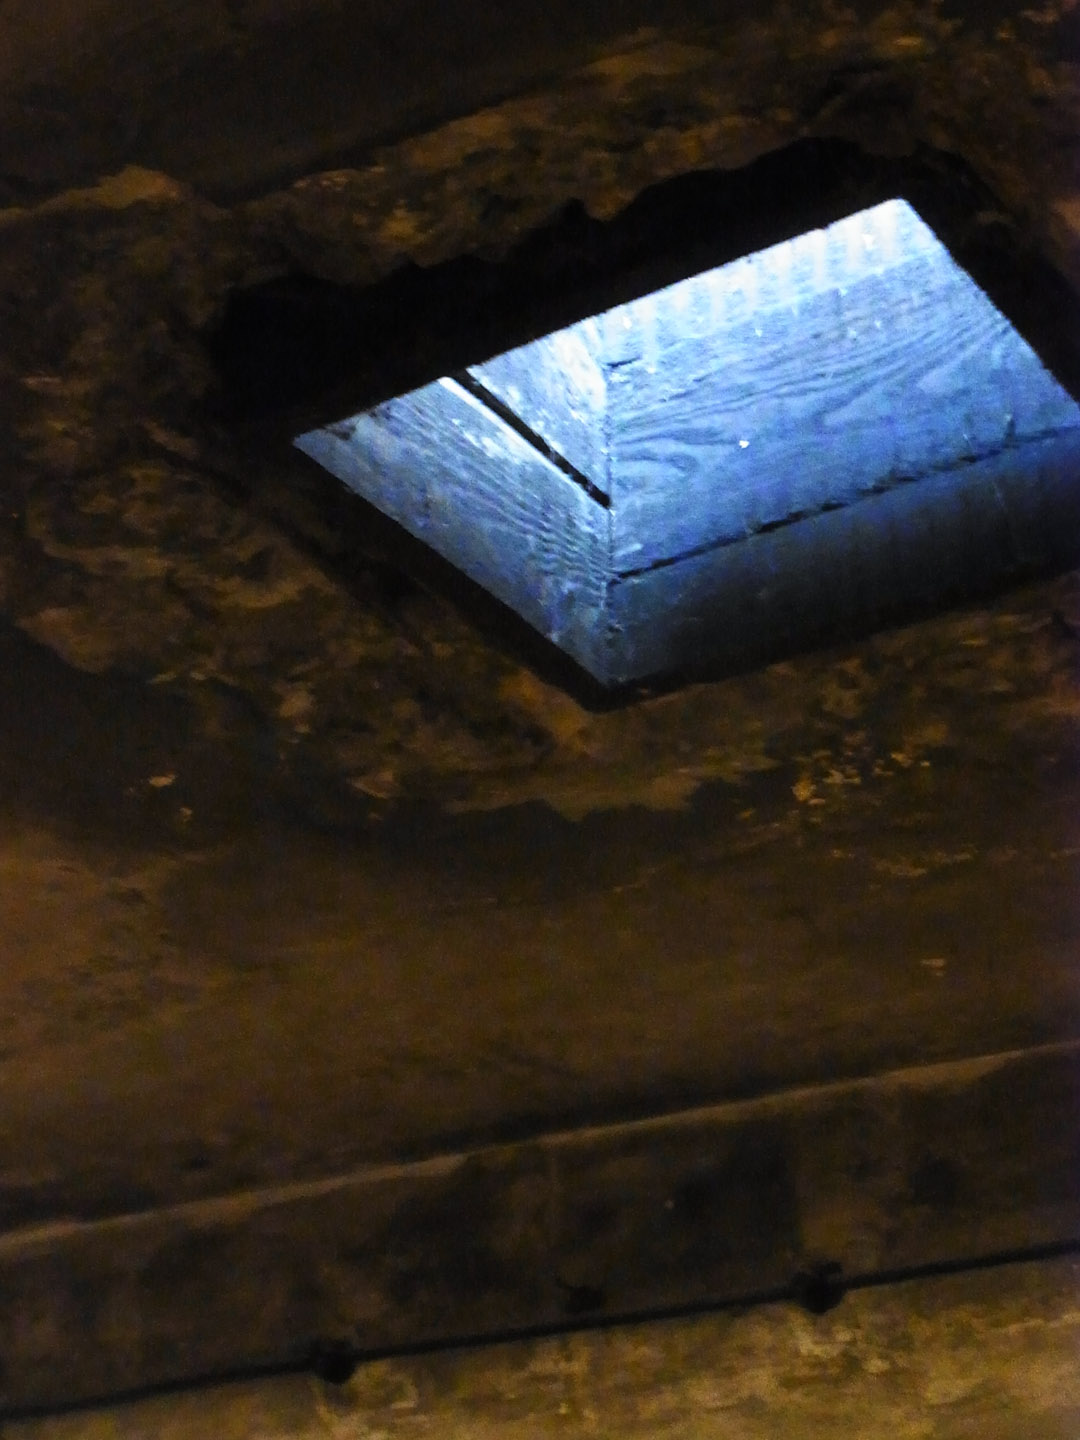 The roof through which the Zyklon B was dropped